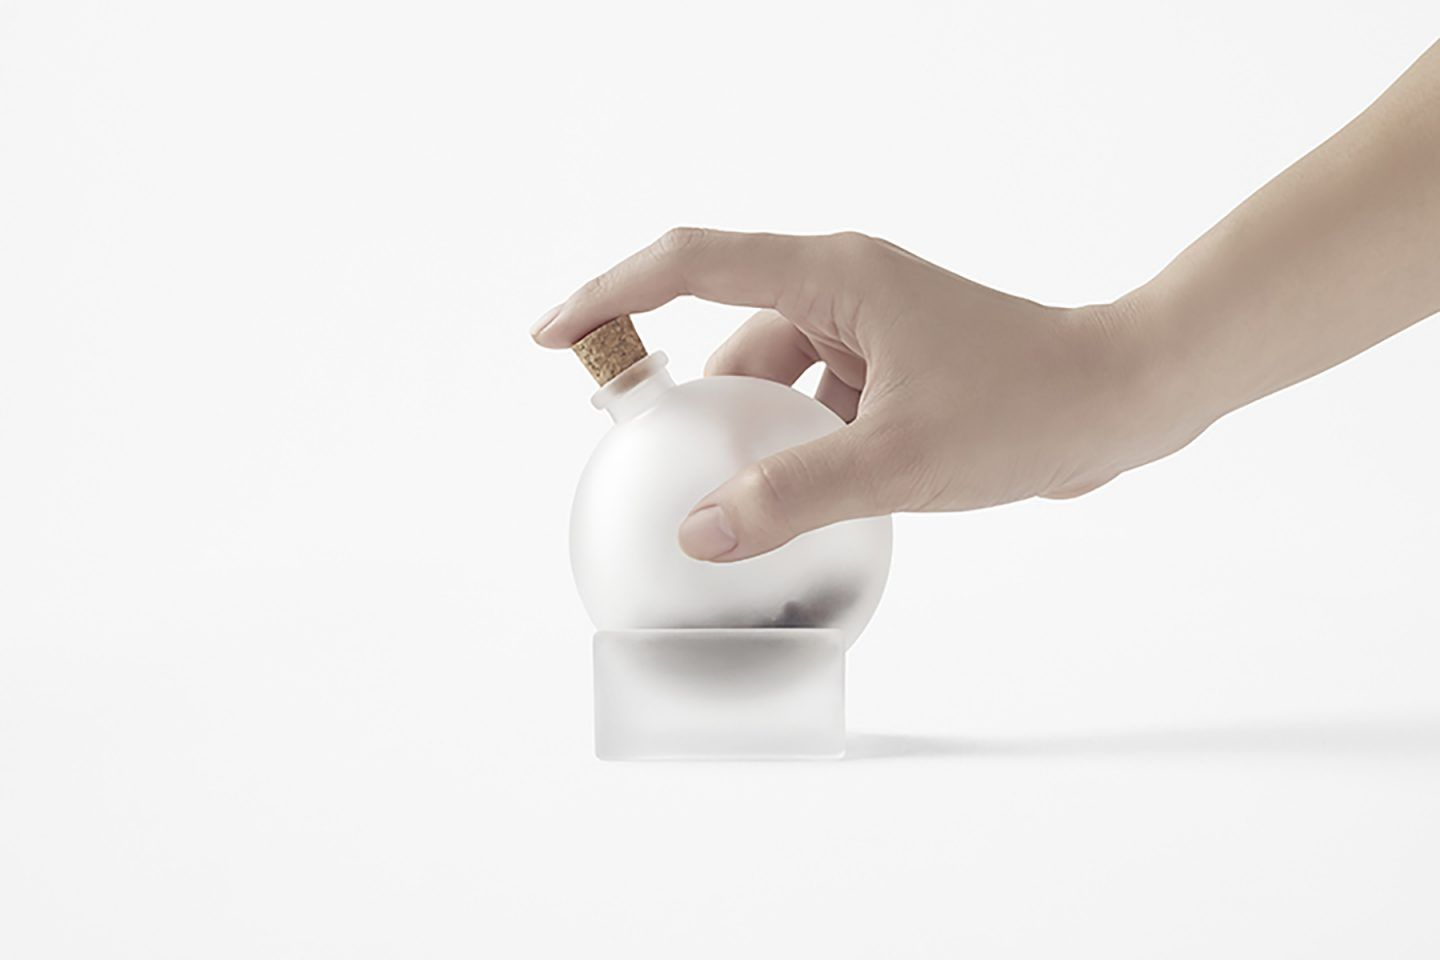 IGNANT-Design-Nendo-Pepper-Pestle-7